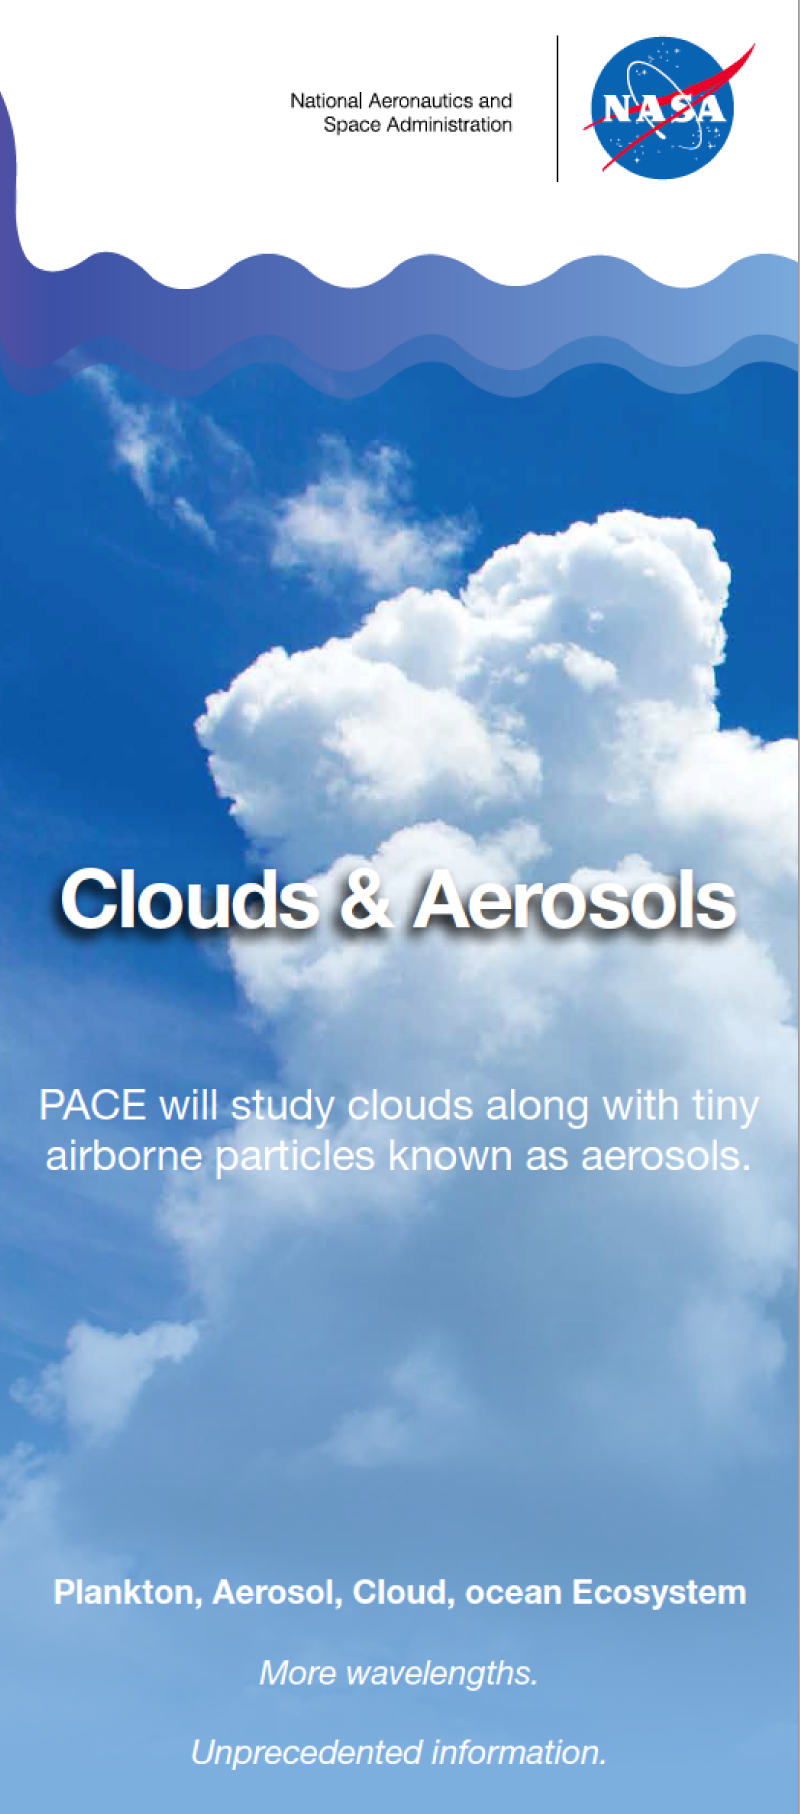 PACE will provide key information on aerosols such as airborne dust, pollen, smoke and haze.